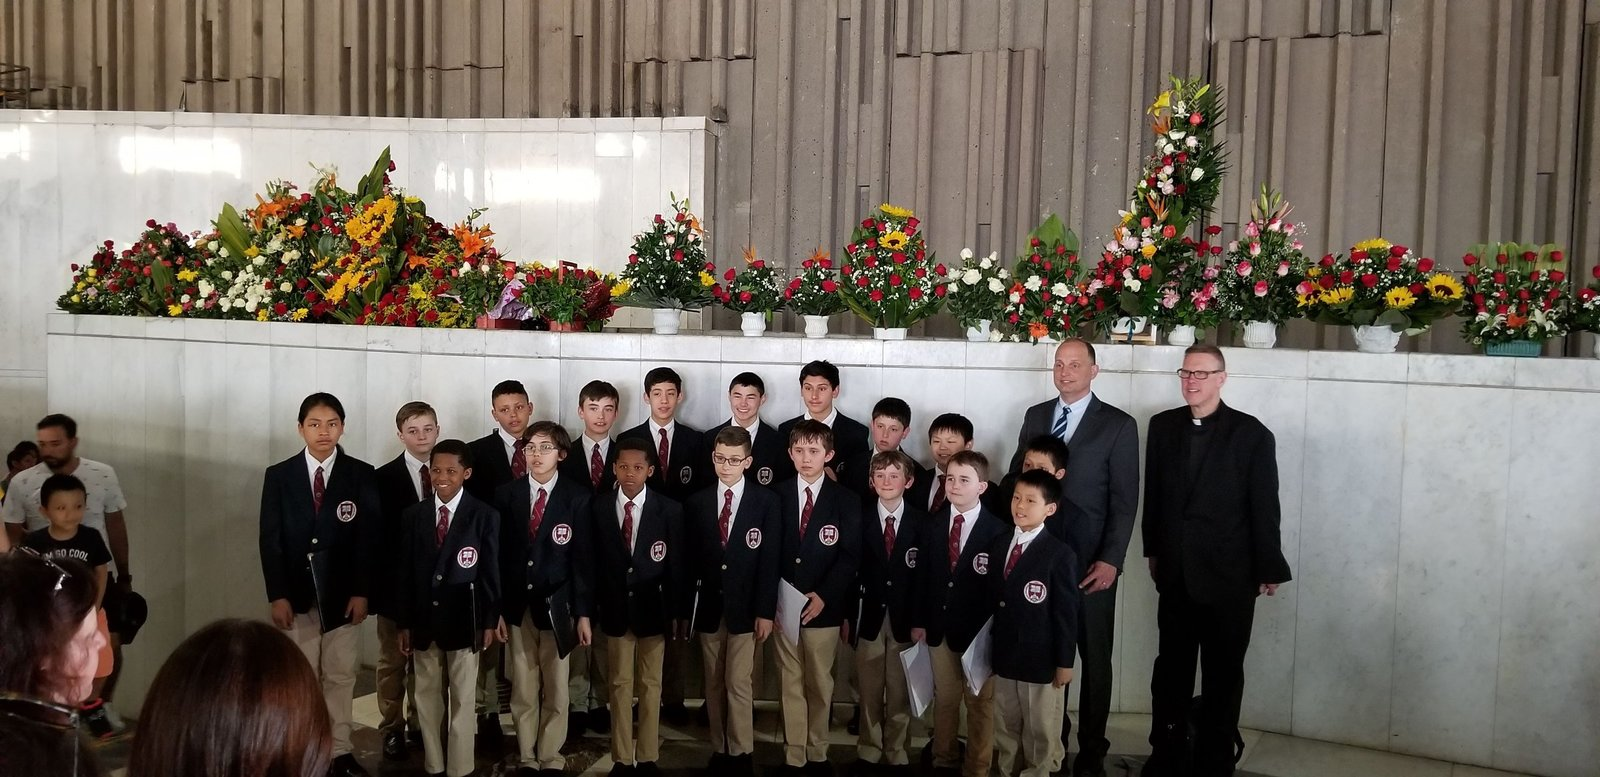 Image: Boy Choristers of Saint Paul's at the Basilica of Our Lady of Guadalupe